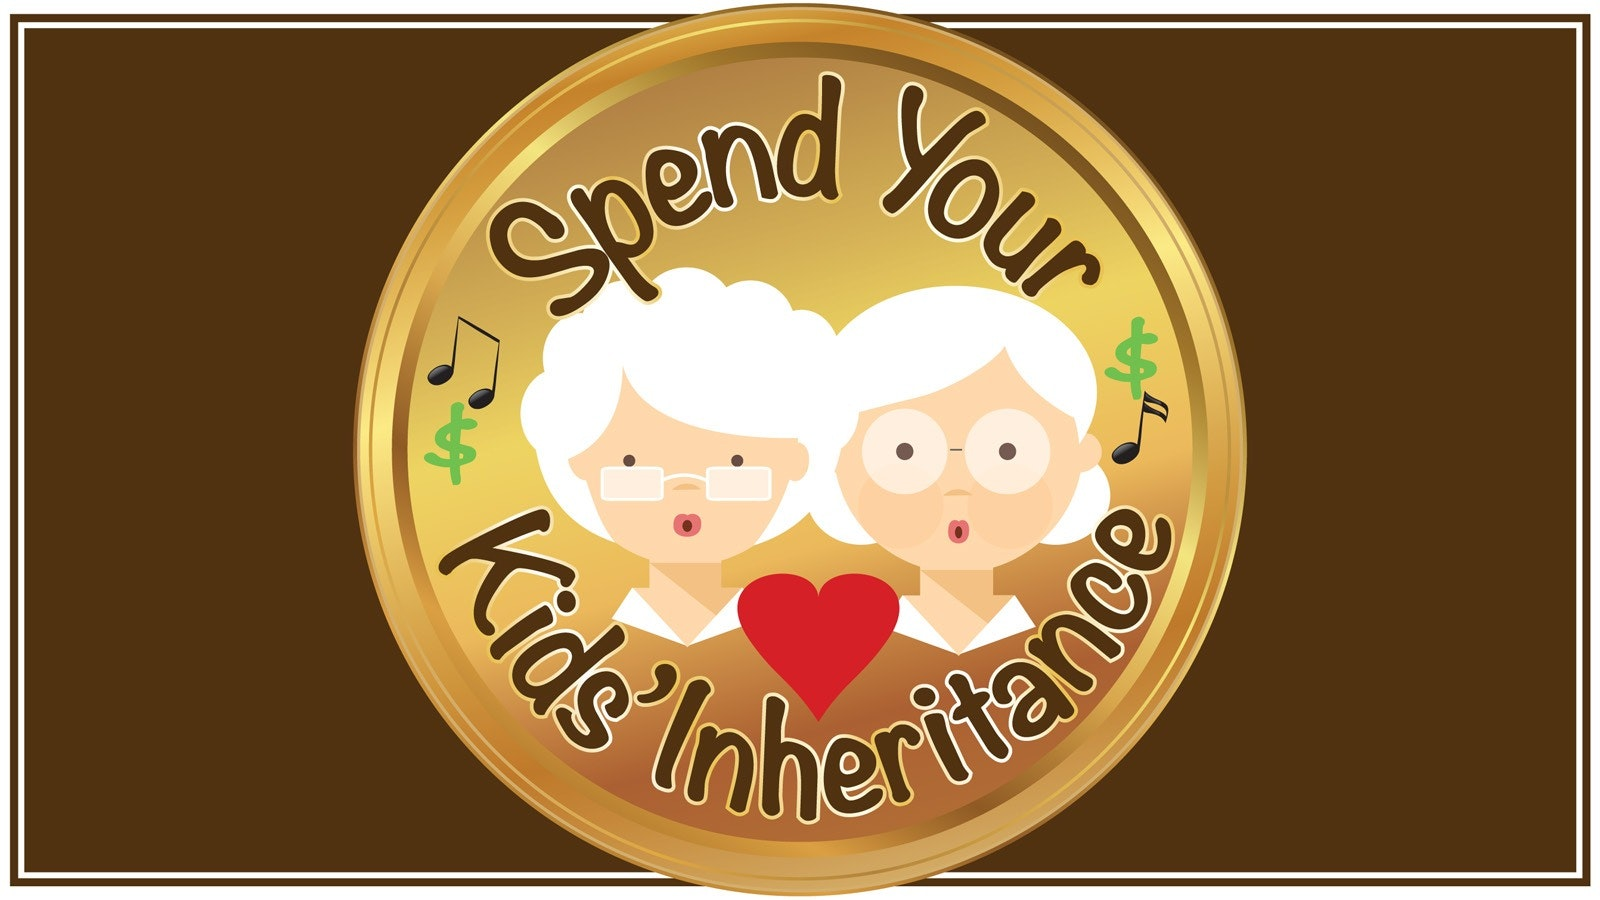 Spend Your Kids' Inheritance